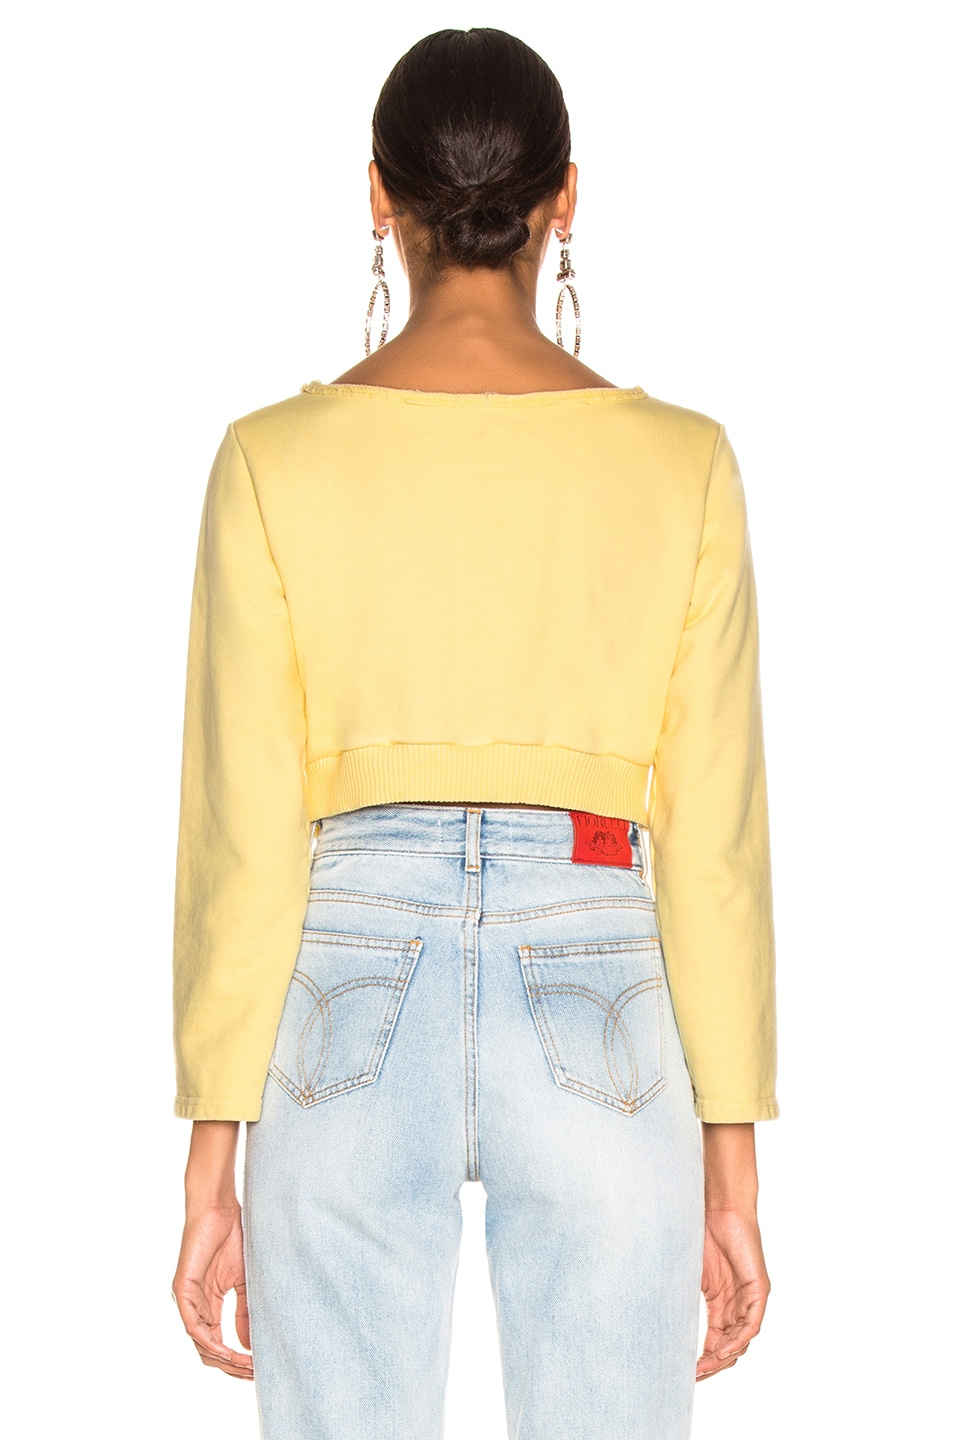 Image 3 of Rachel Comey Argento Sweatshirt  in Lemon